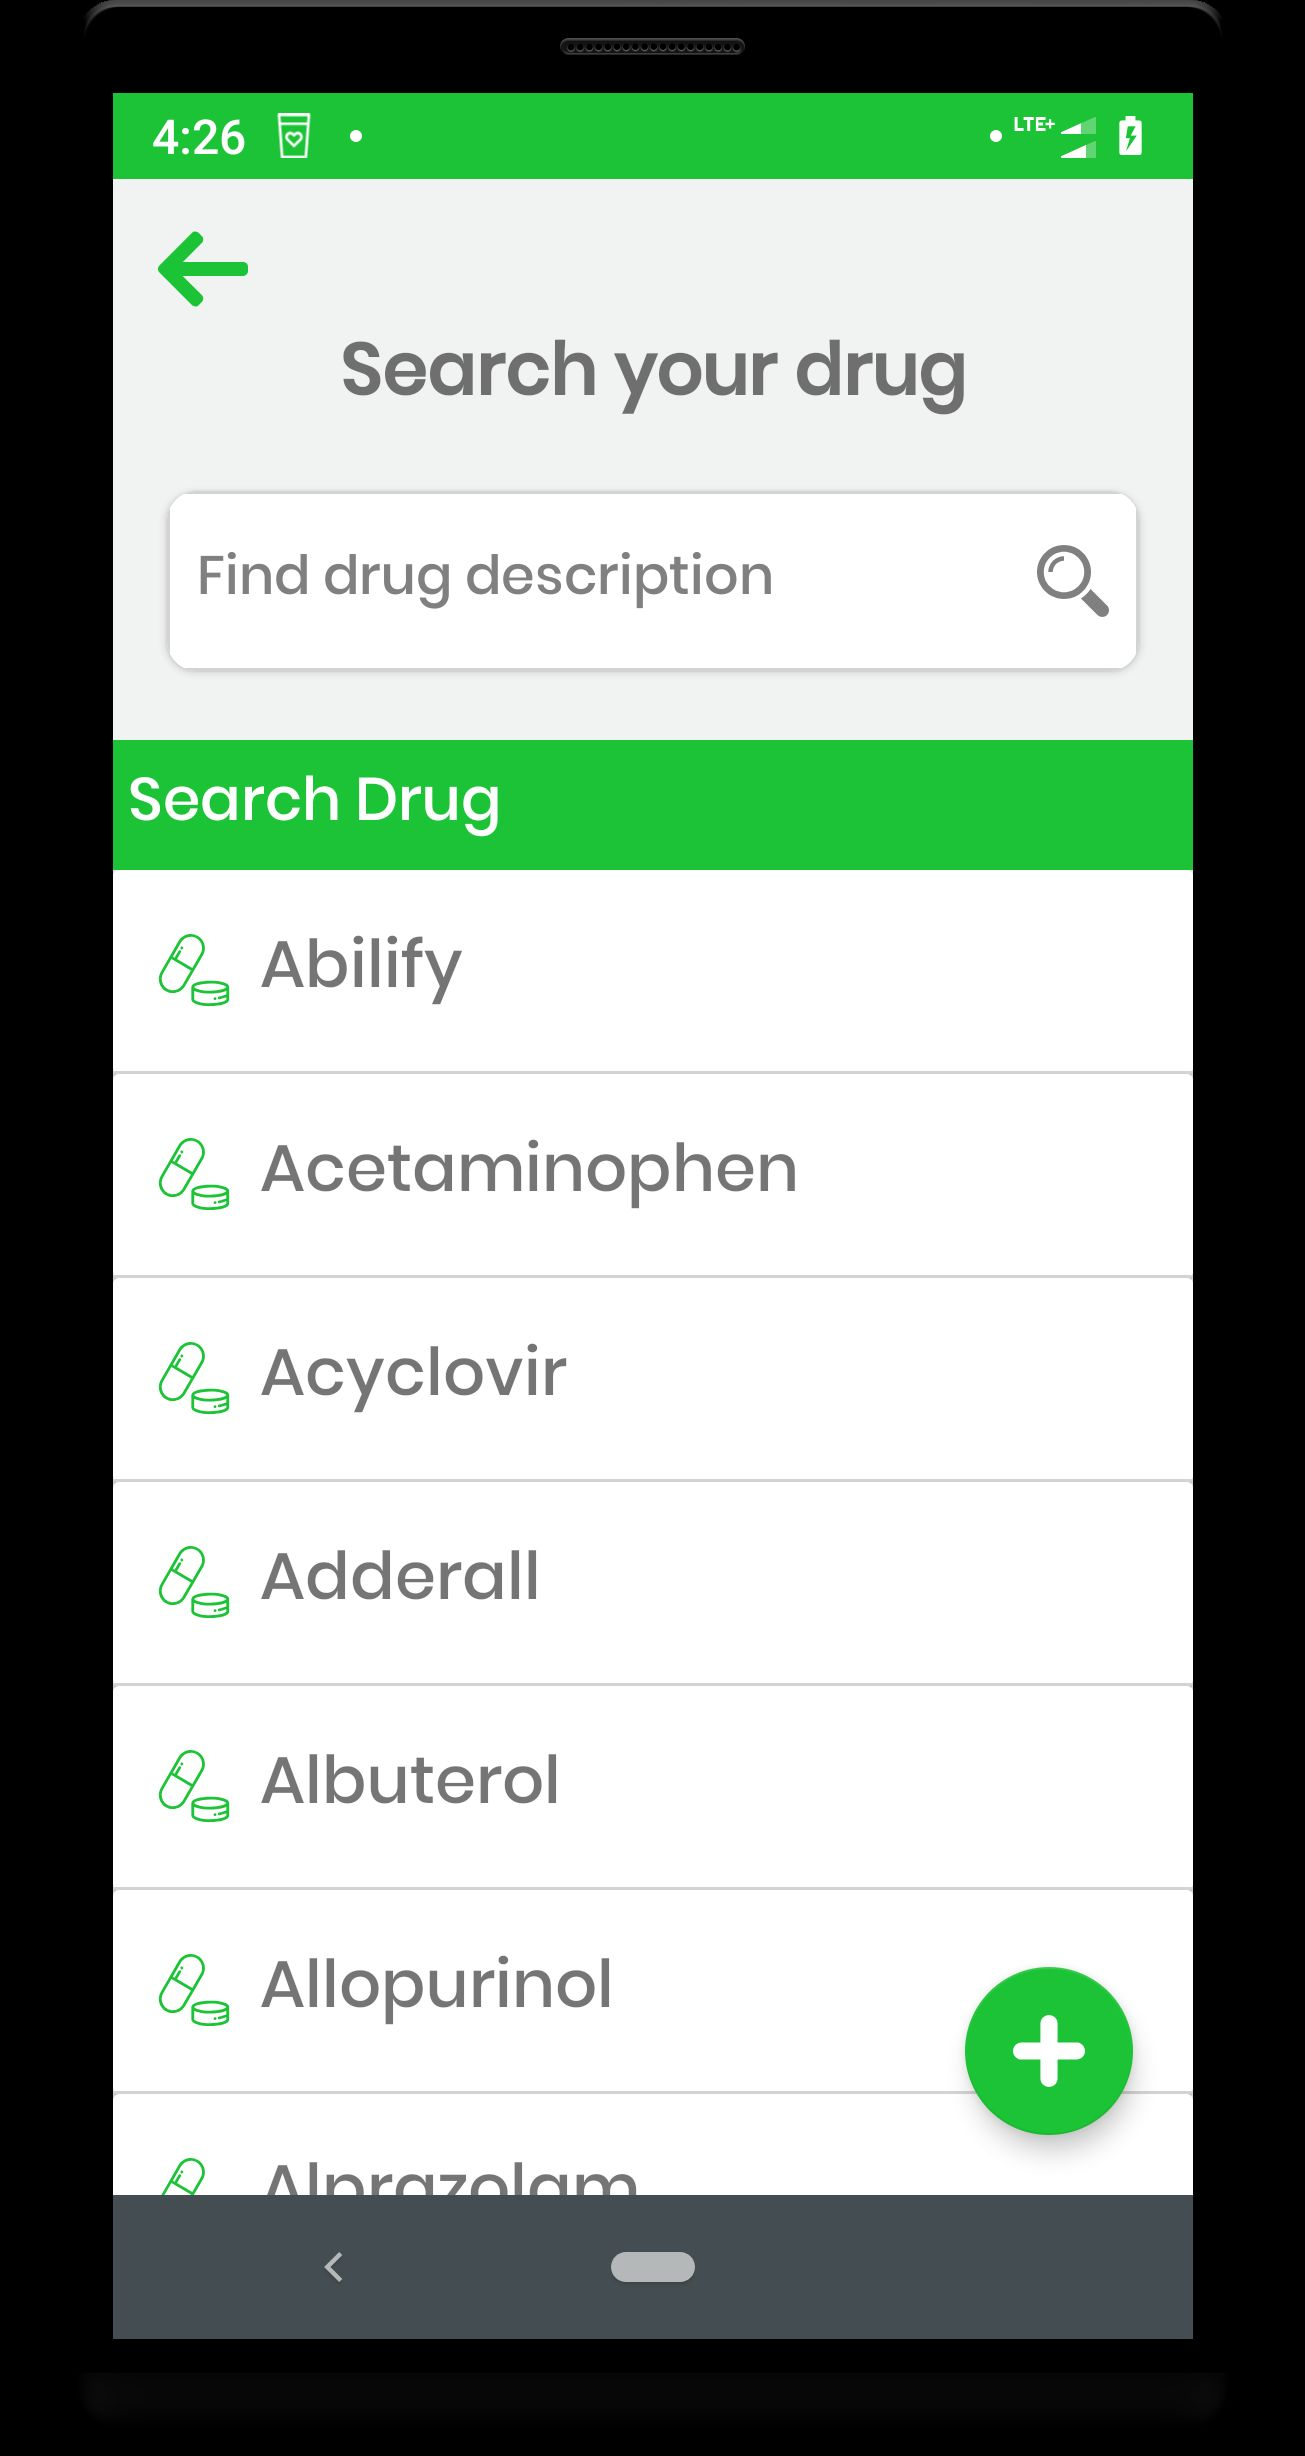 Drugs And Diseases Dictionary Android App Screenshot 2